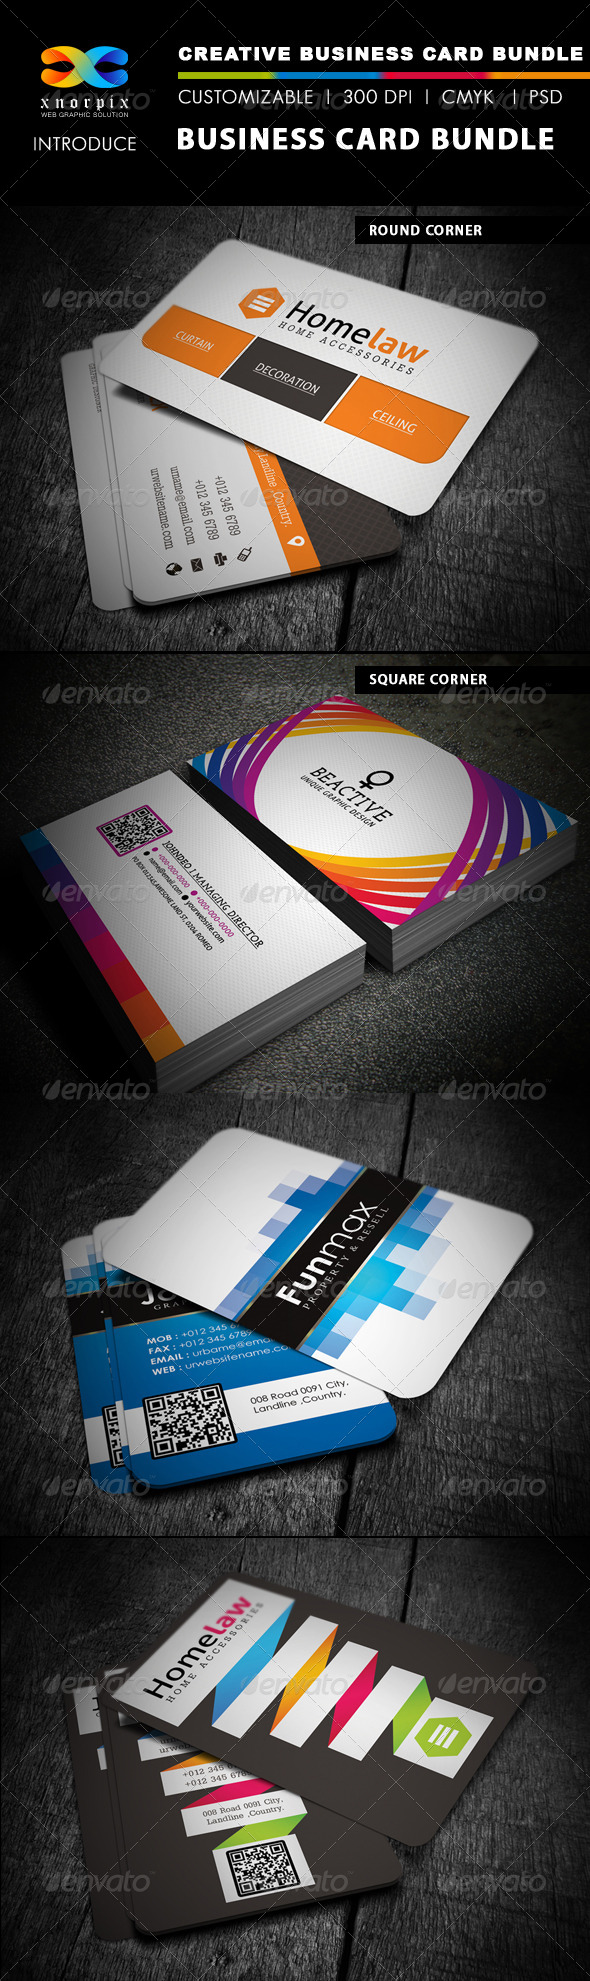 Business Card Bundle 4 in 1-Vol 2 - Corporate Business Cards